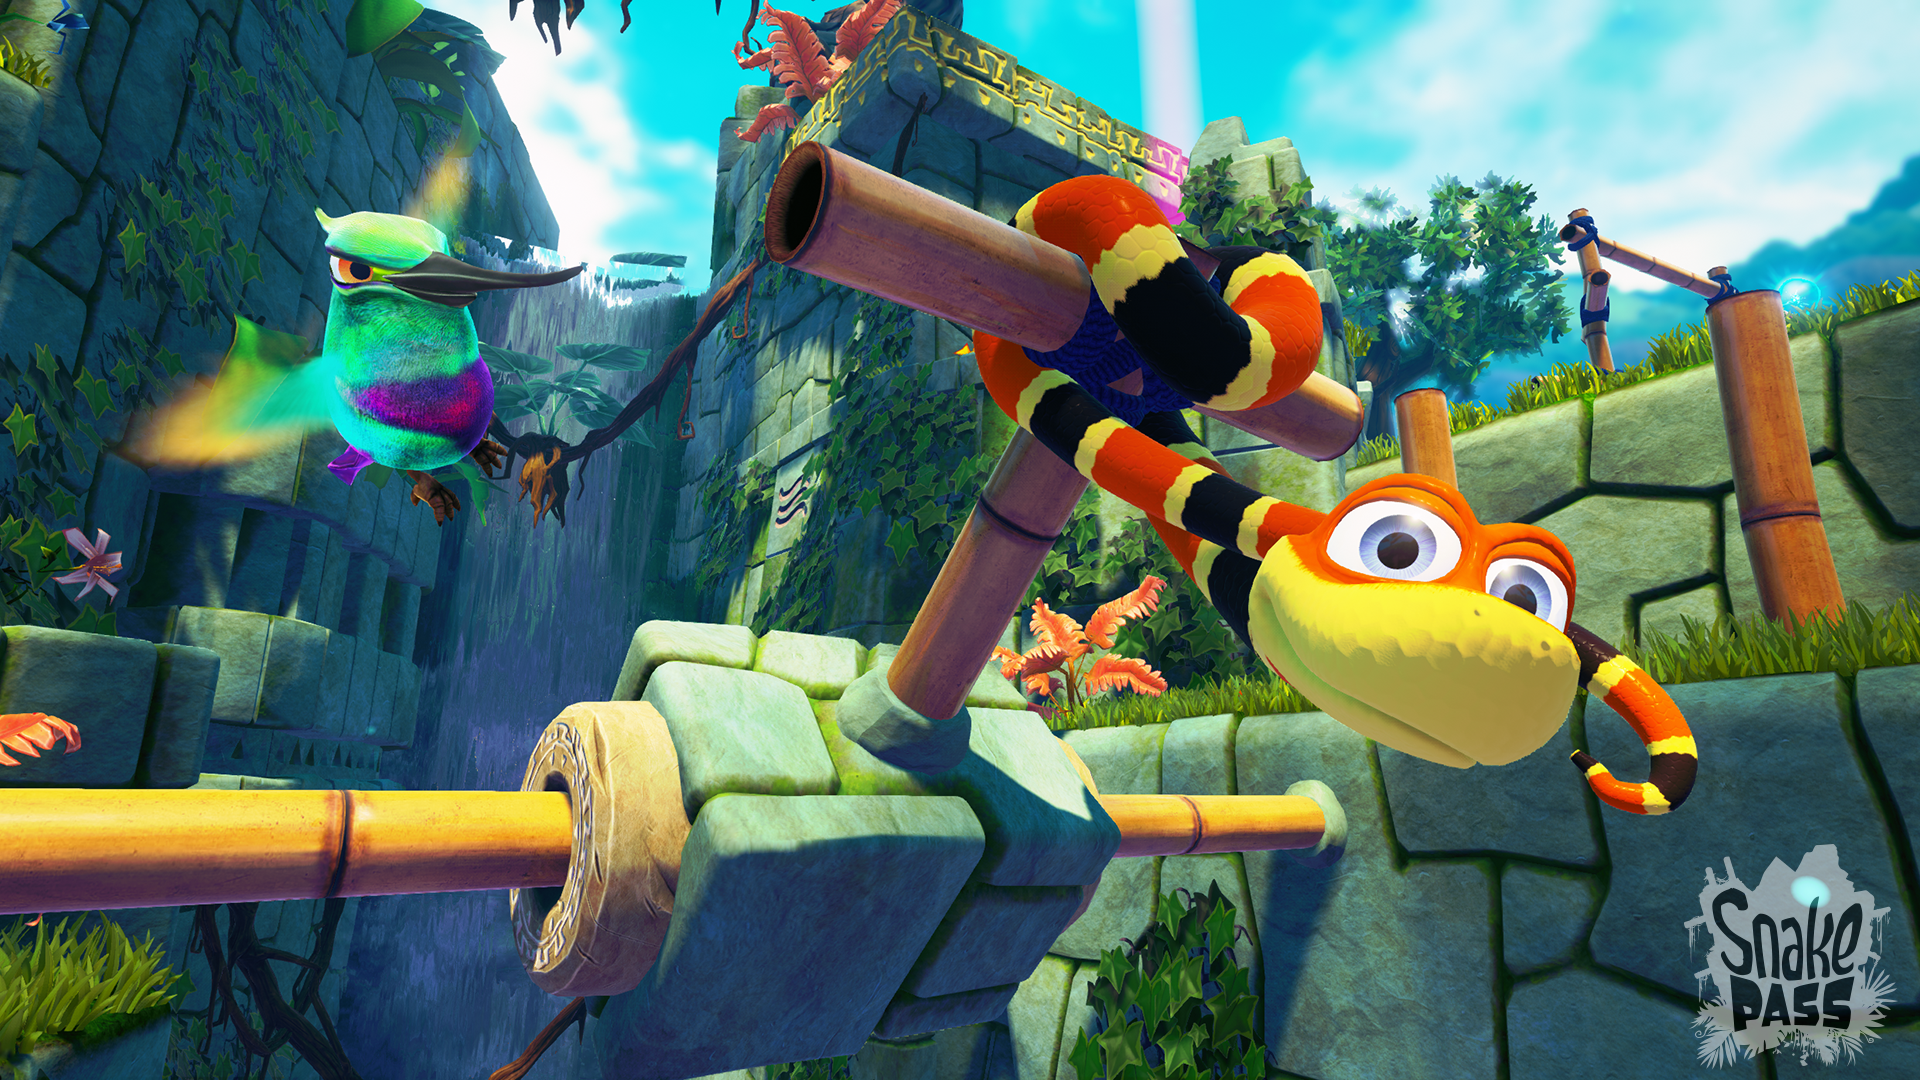 Snake Pass Nintendo Switch Patch Now Available